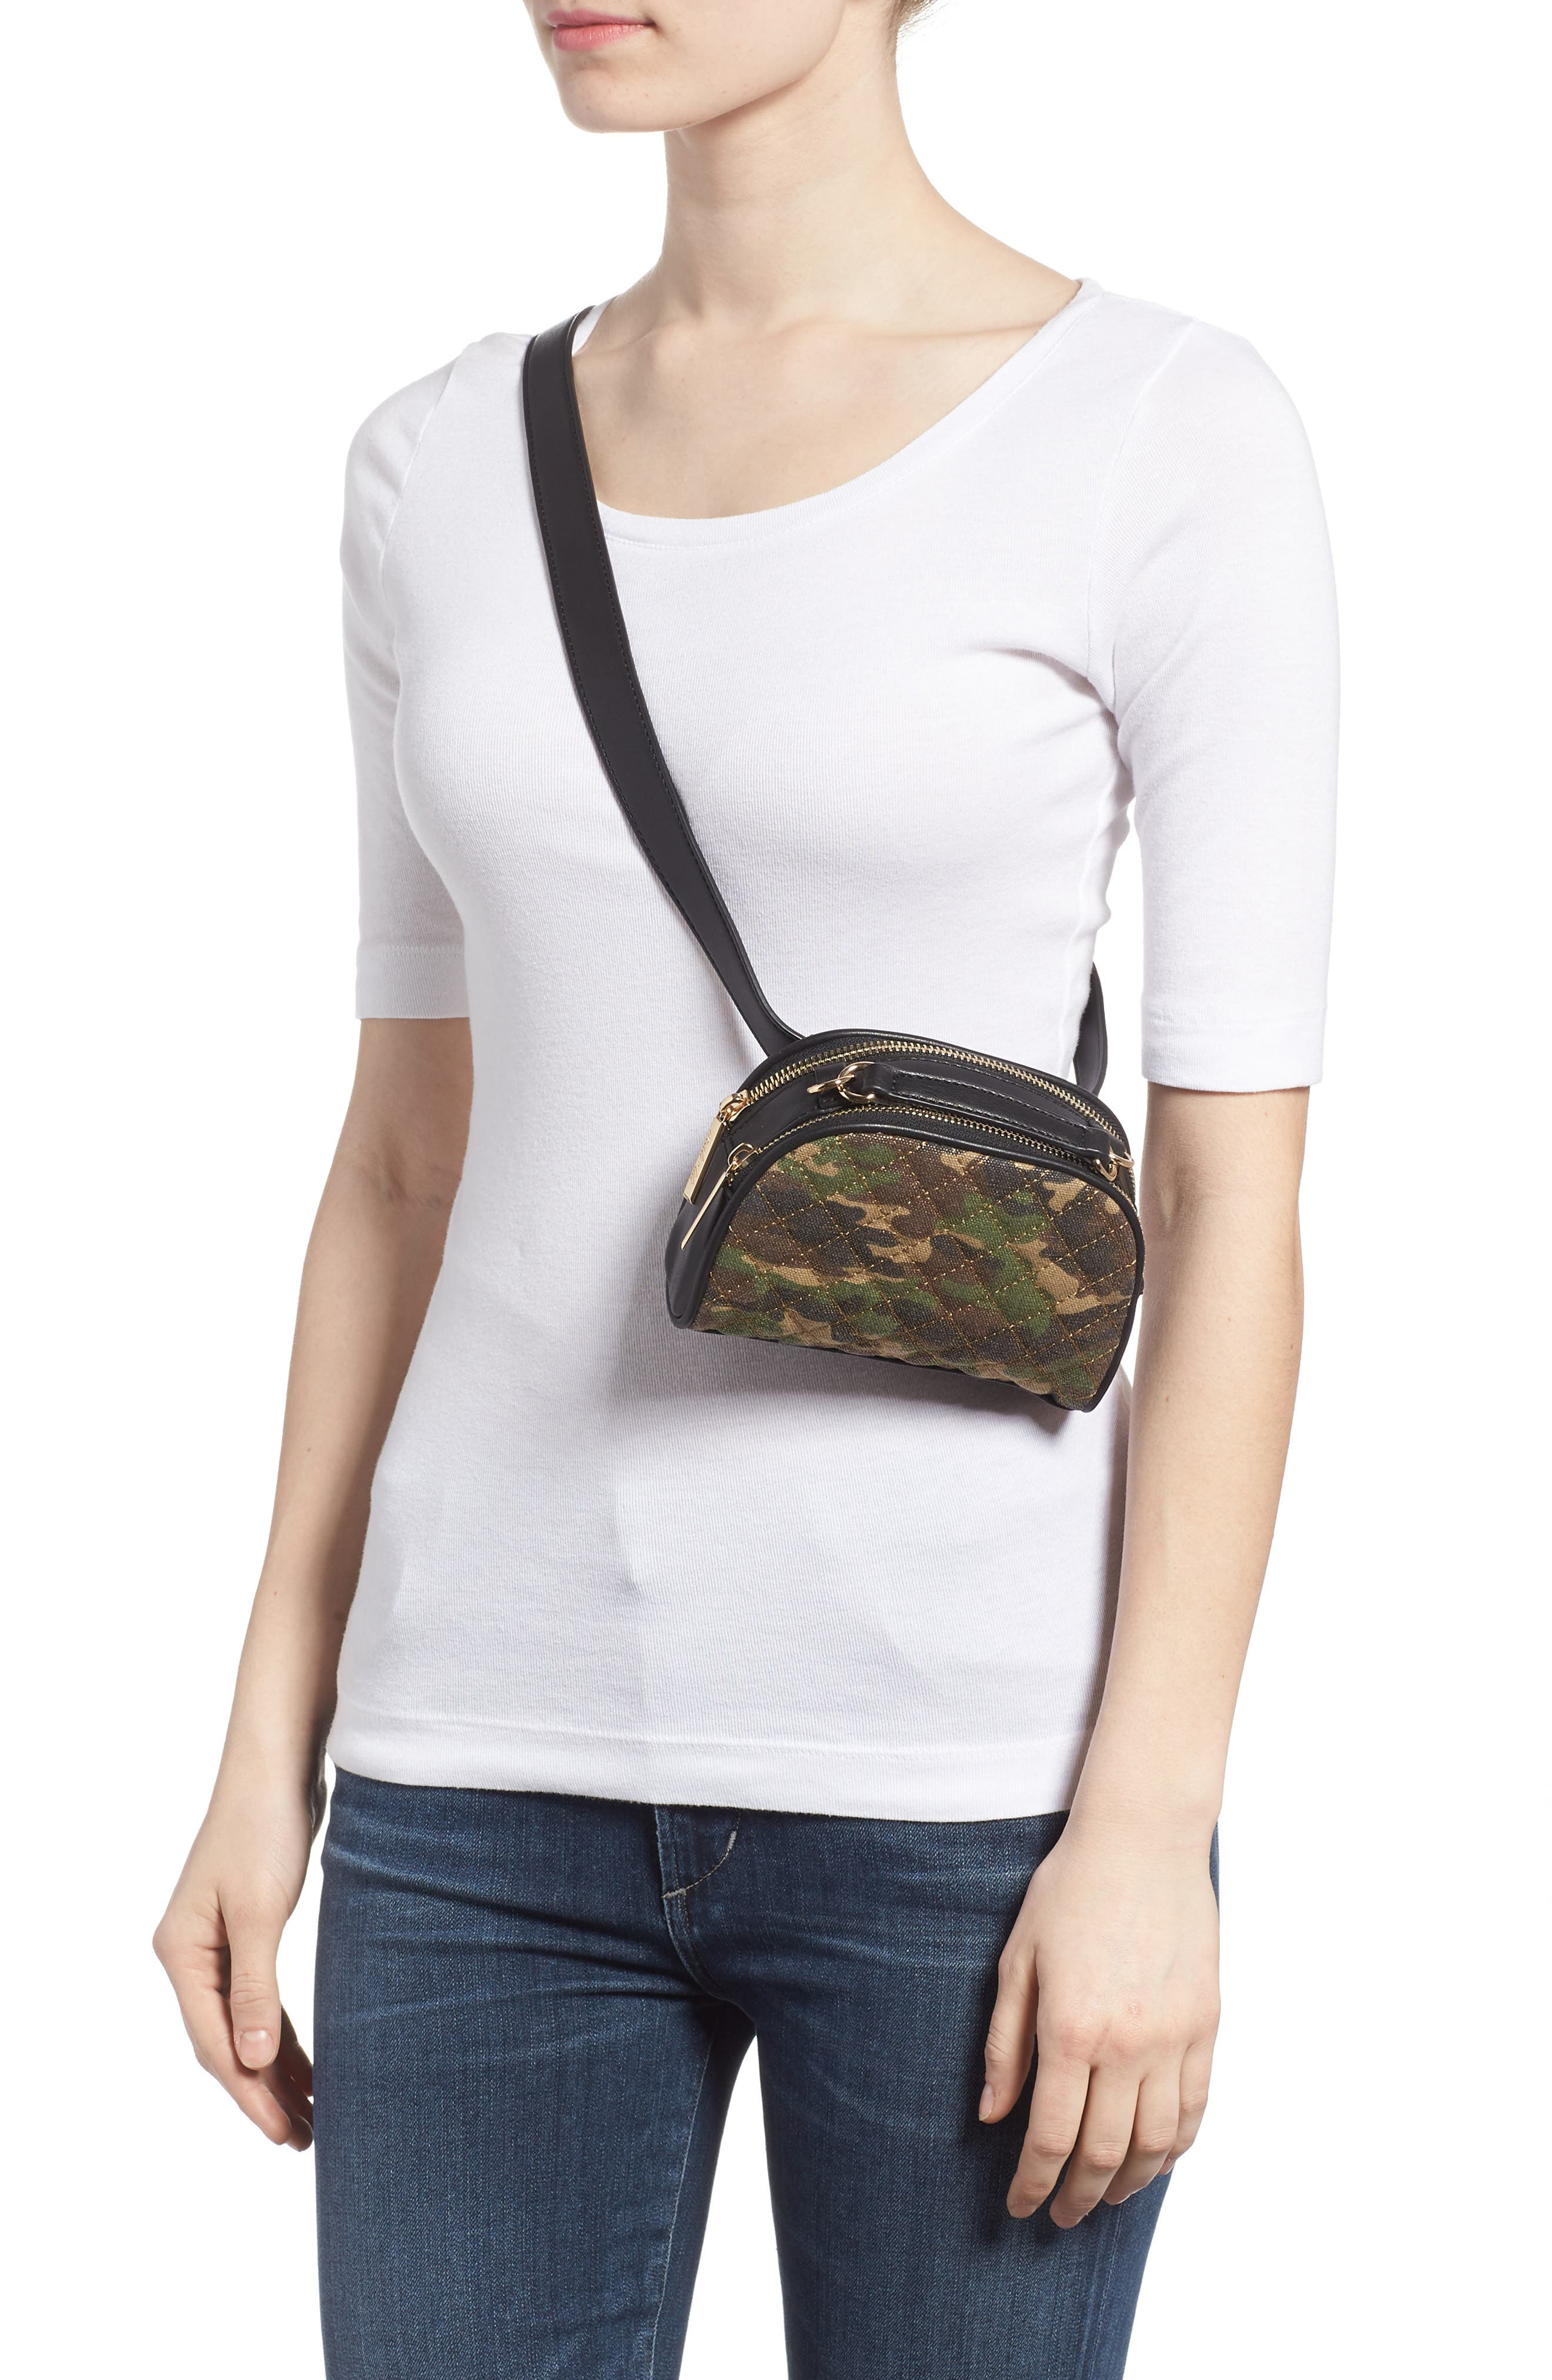 Mali + Lili Quilted Camouflage Belt Bag,                             Alternate thumbnail 3, color,                             340